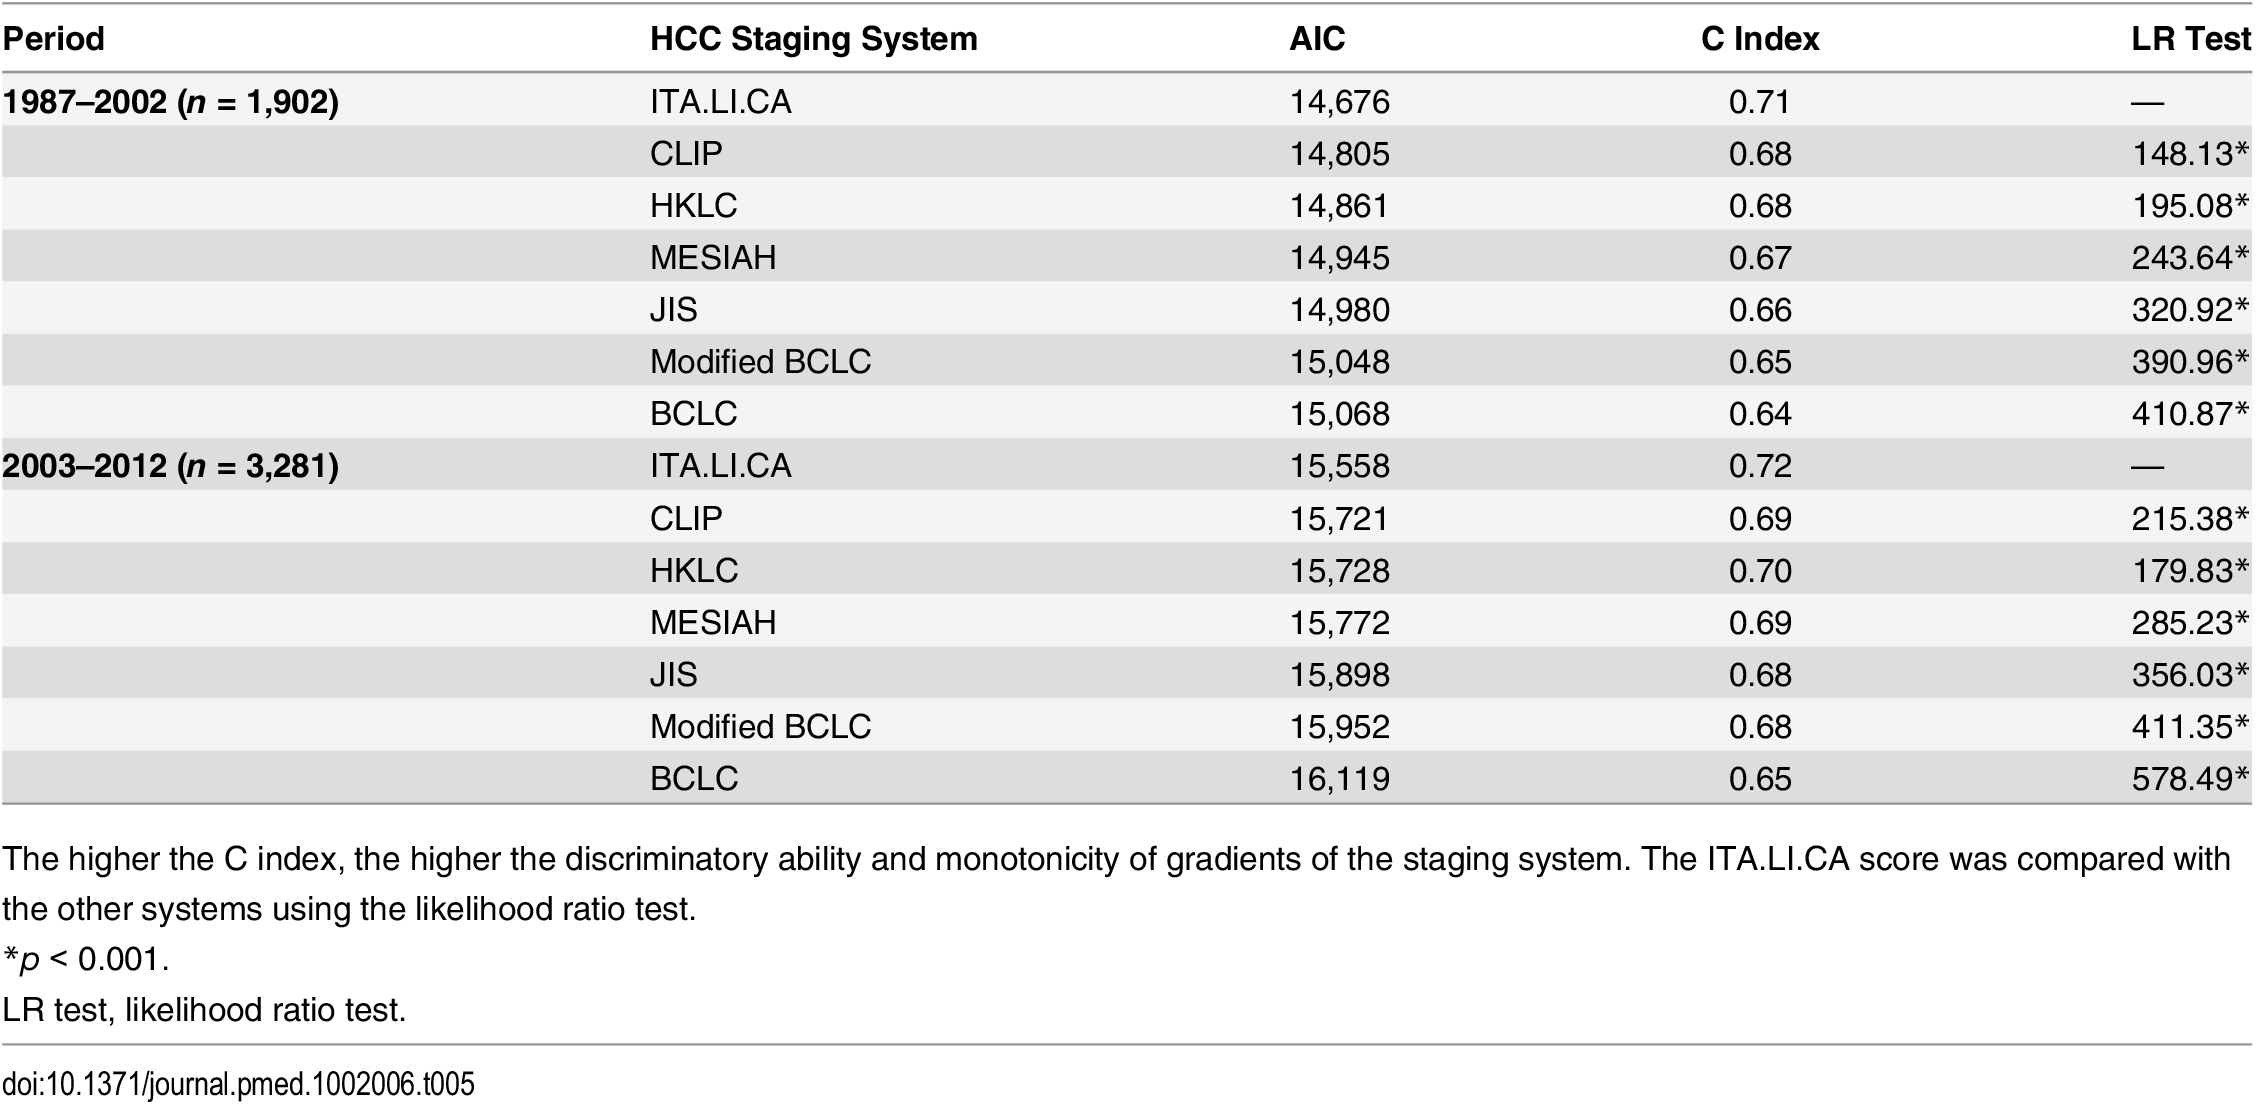 Discrimination ability of the integrated ITA.LI.CA prognostic system and comparison with other staging systems in the training and internal validation cohorts (<i>n</i> = 5,183) stratified based on study period.